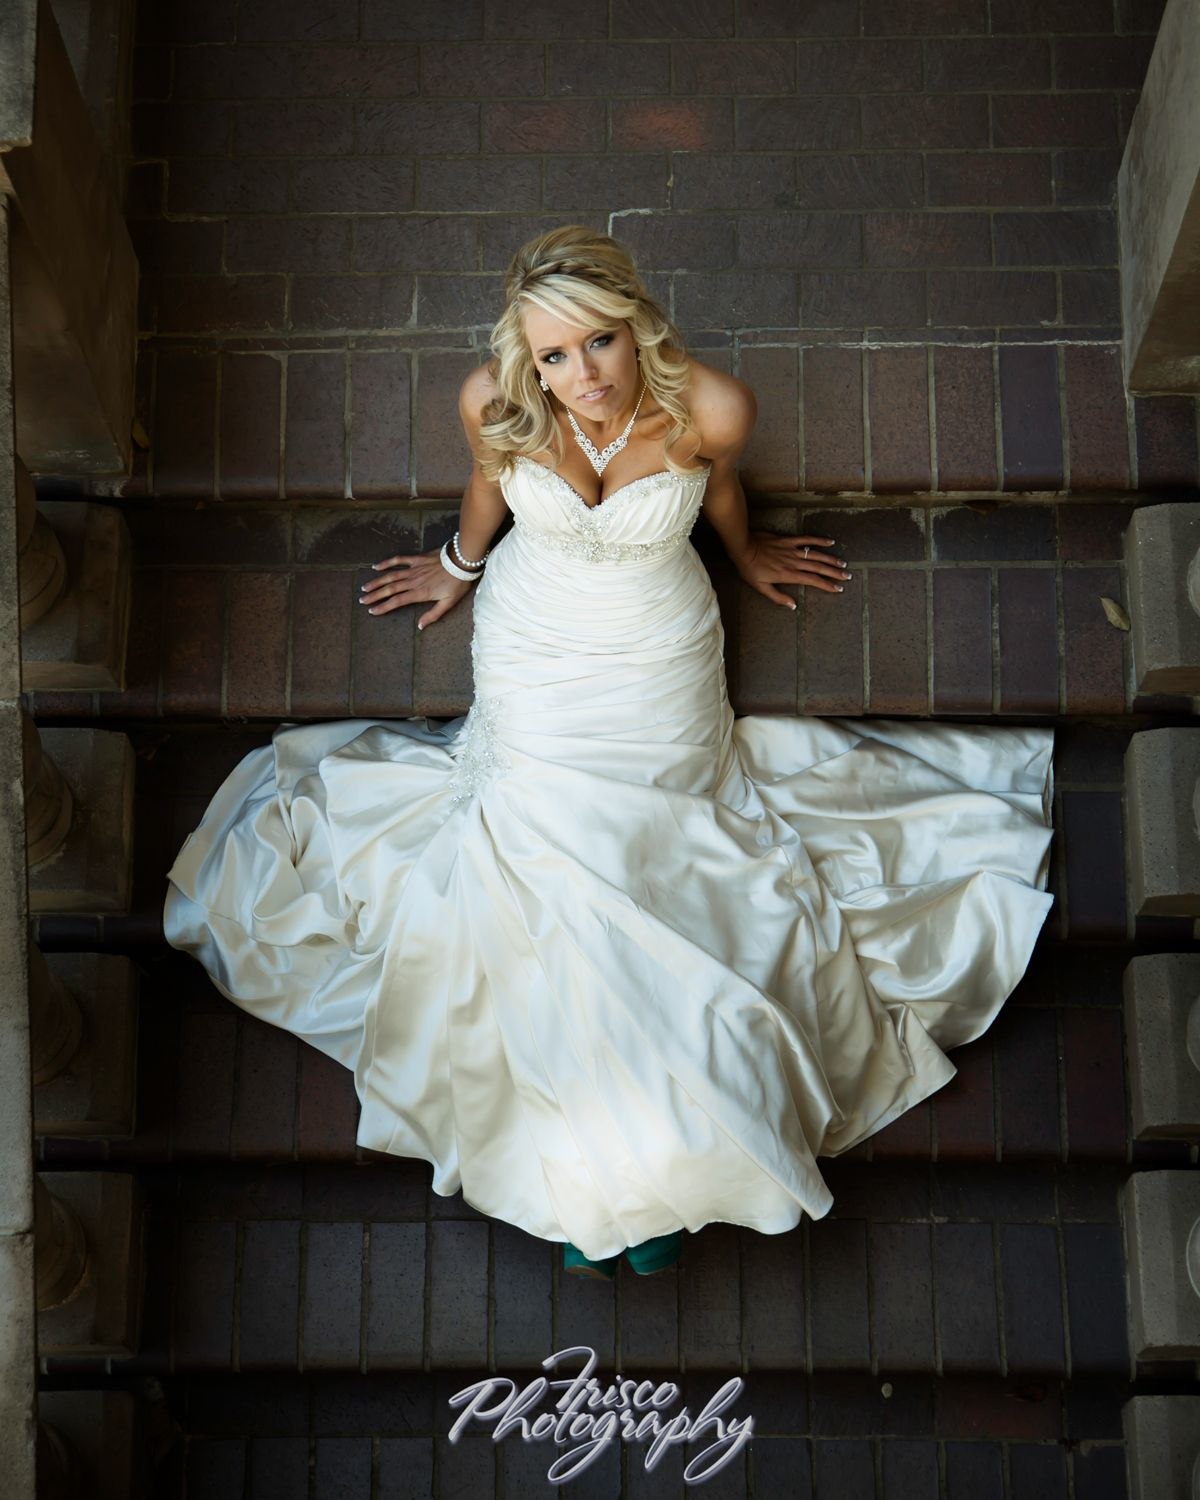 Simple Pose For Your Bridal Portrait Session To Show Off